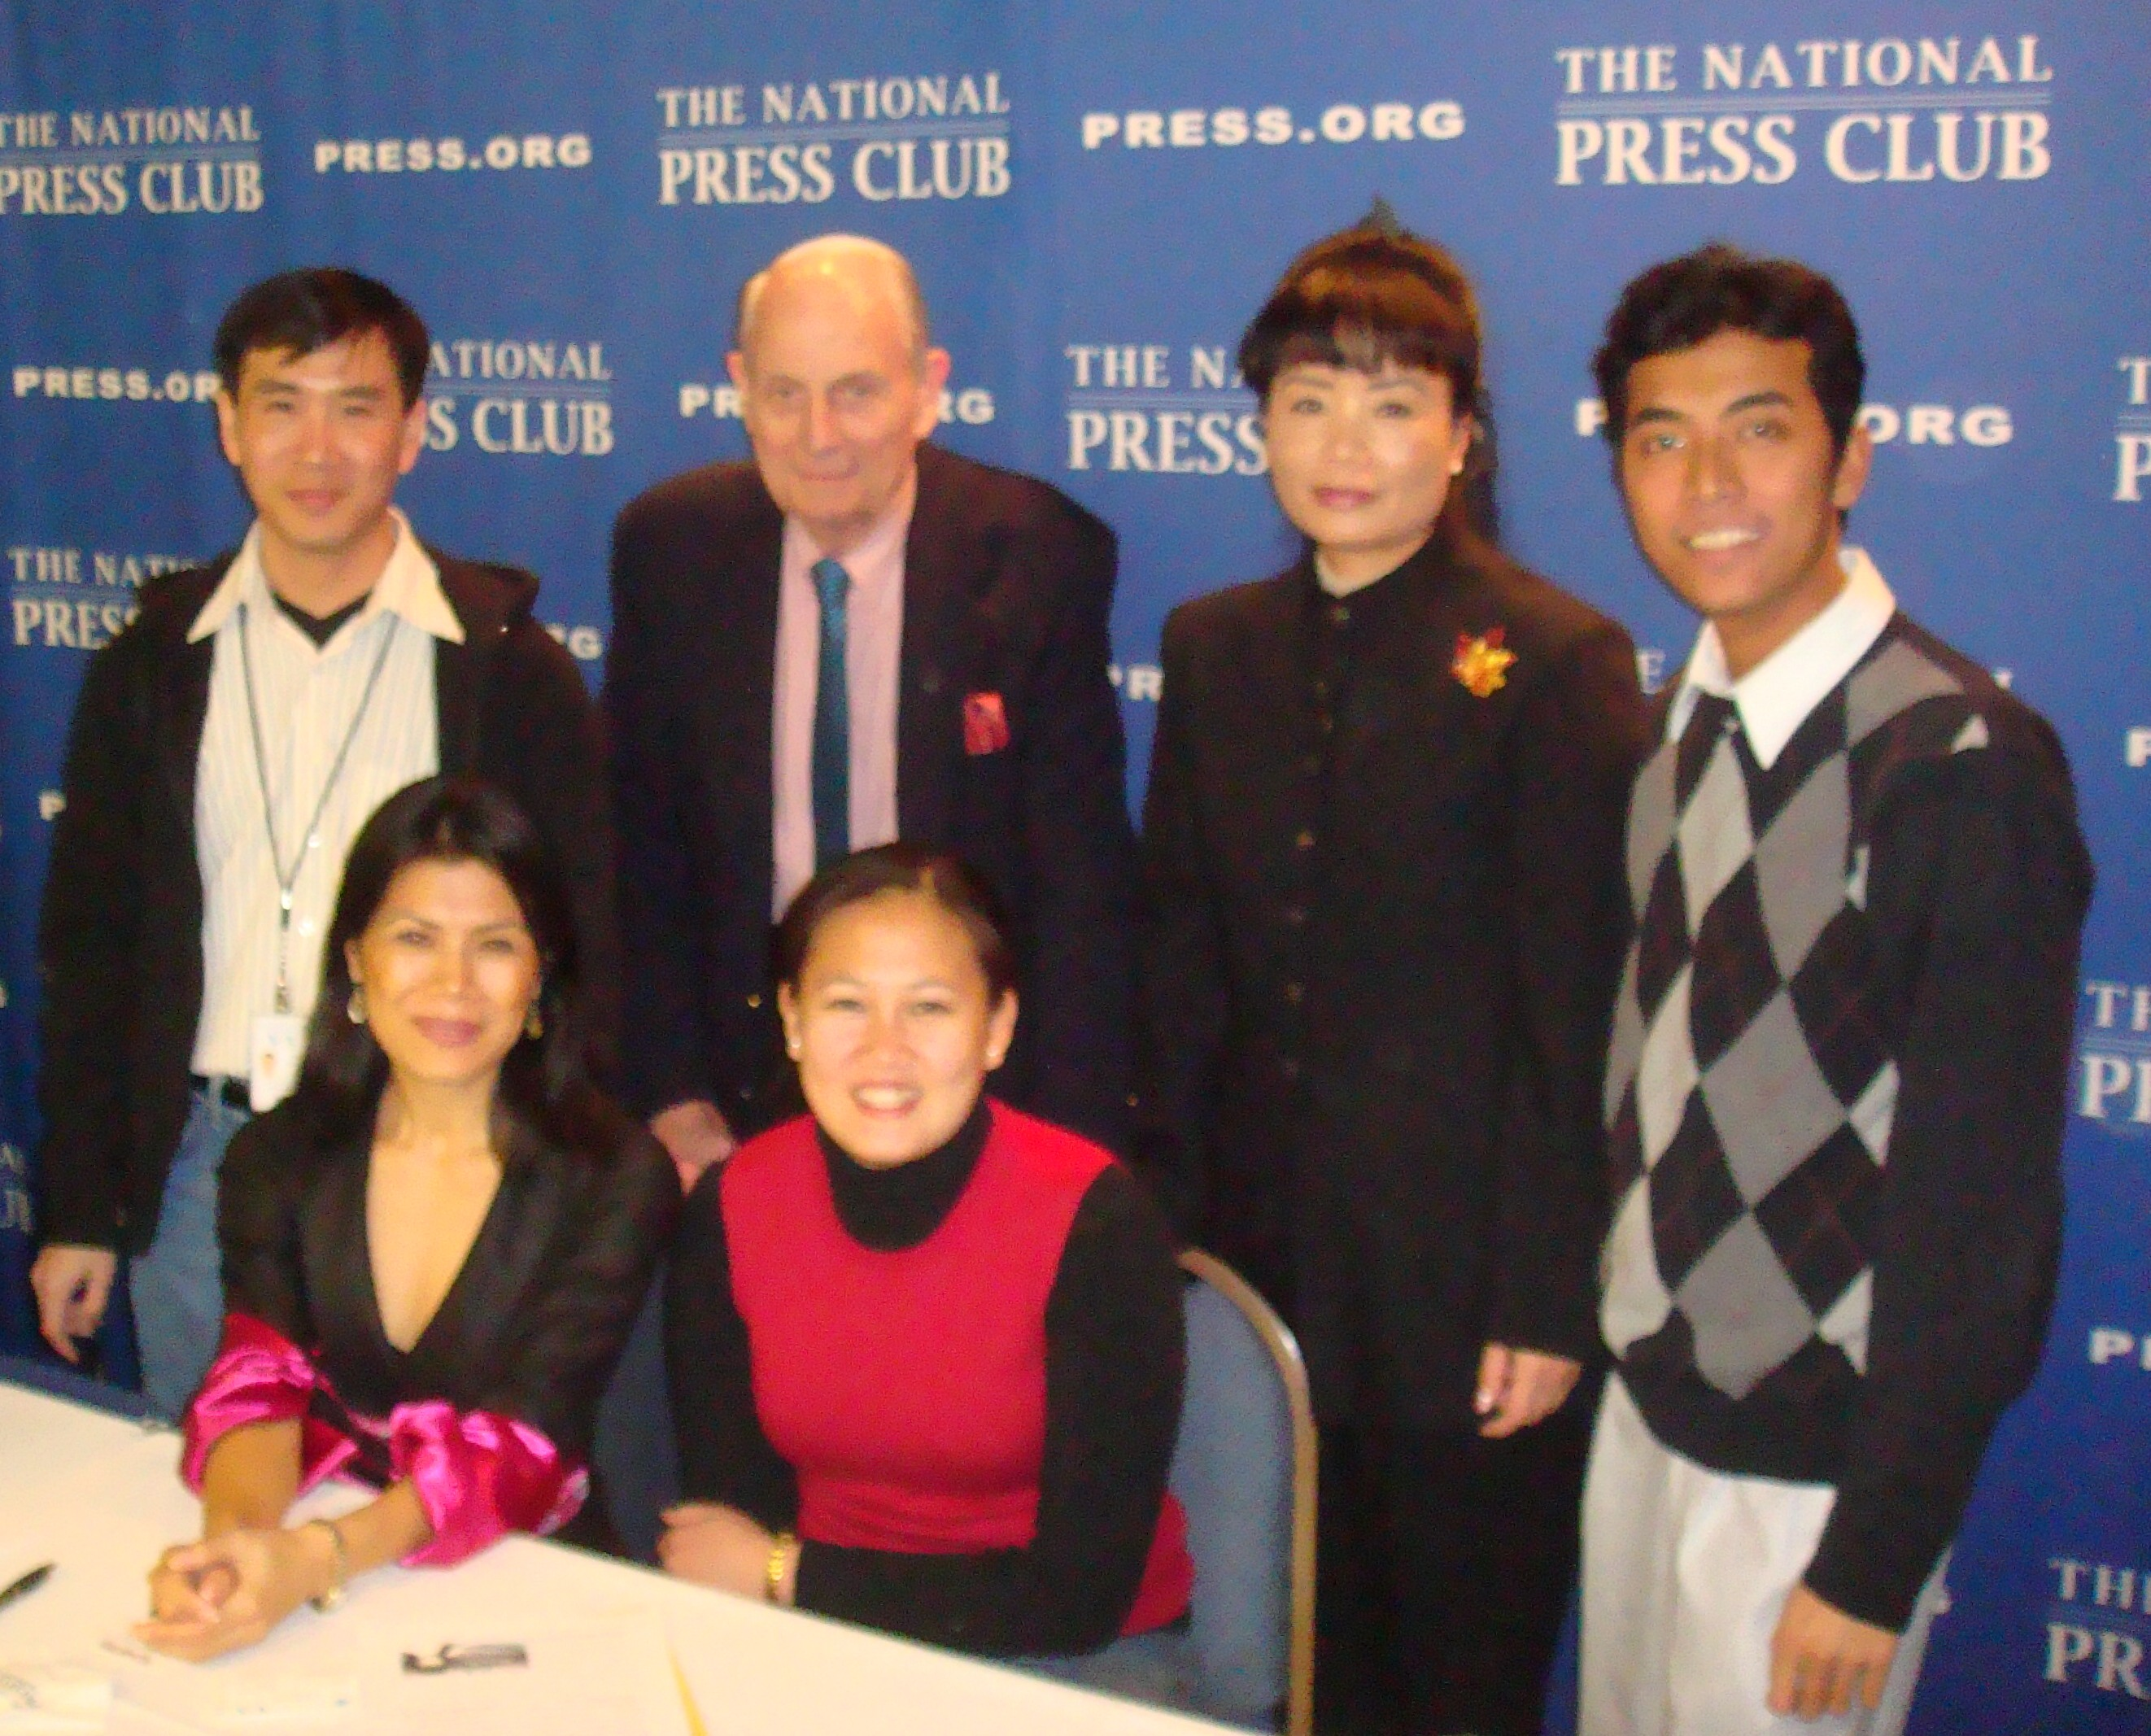 Theary Seng with VOA staff, Peter Hickman, author Chanrithy Him at National Press Club, 5 March 2010